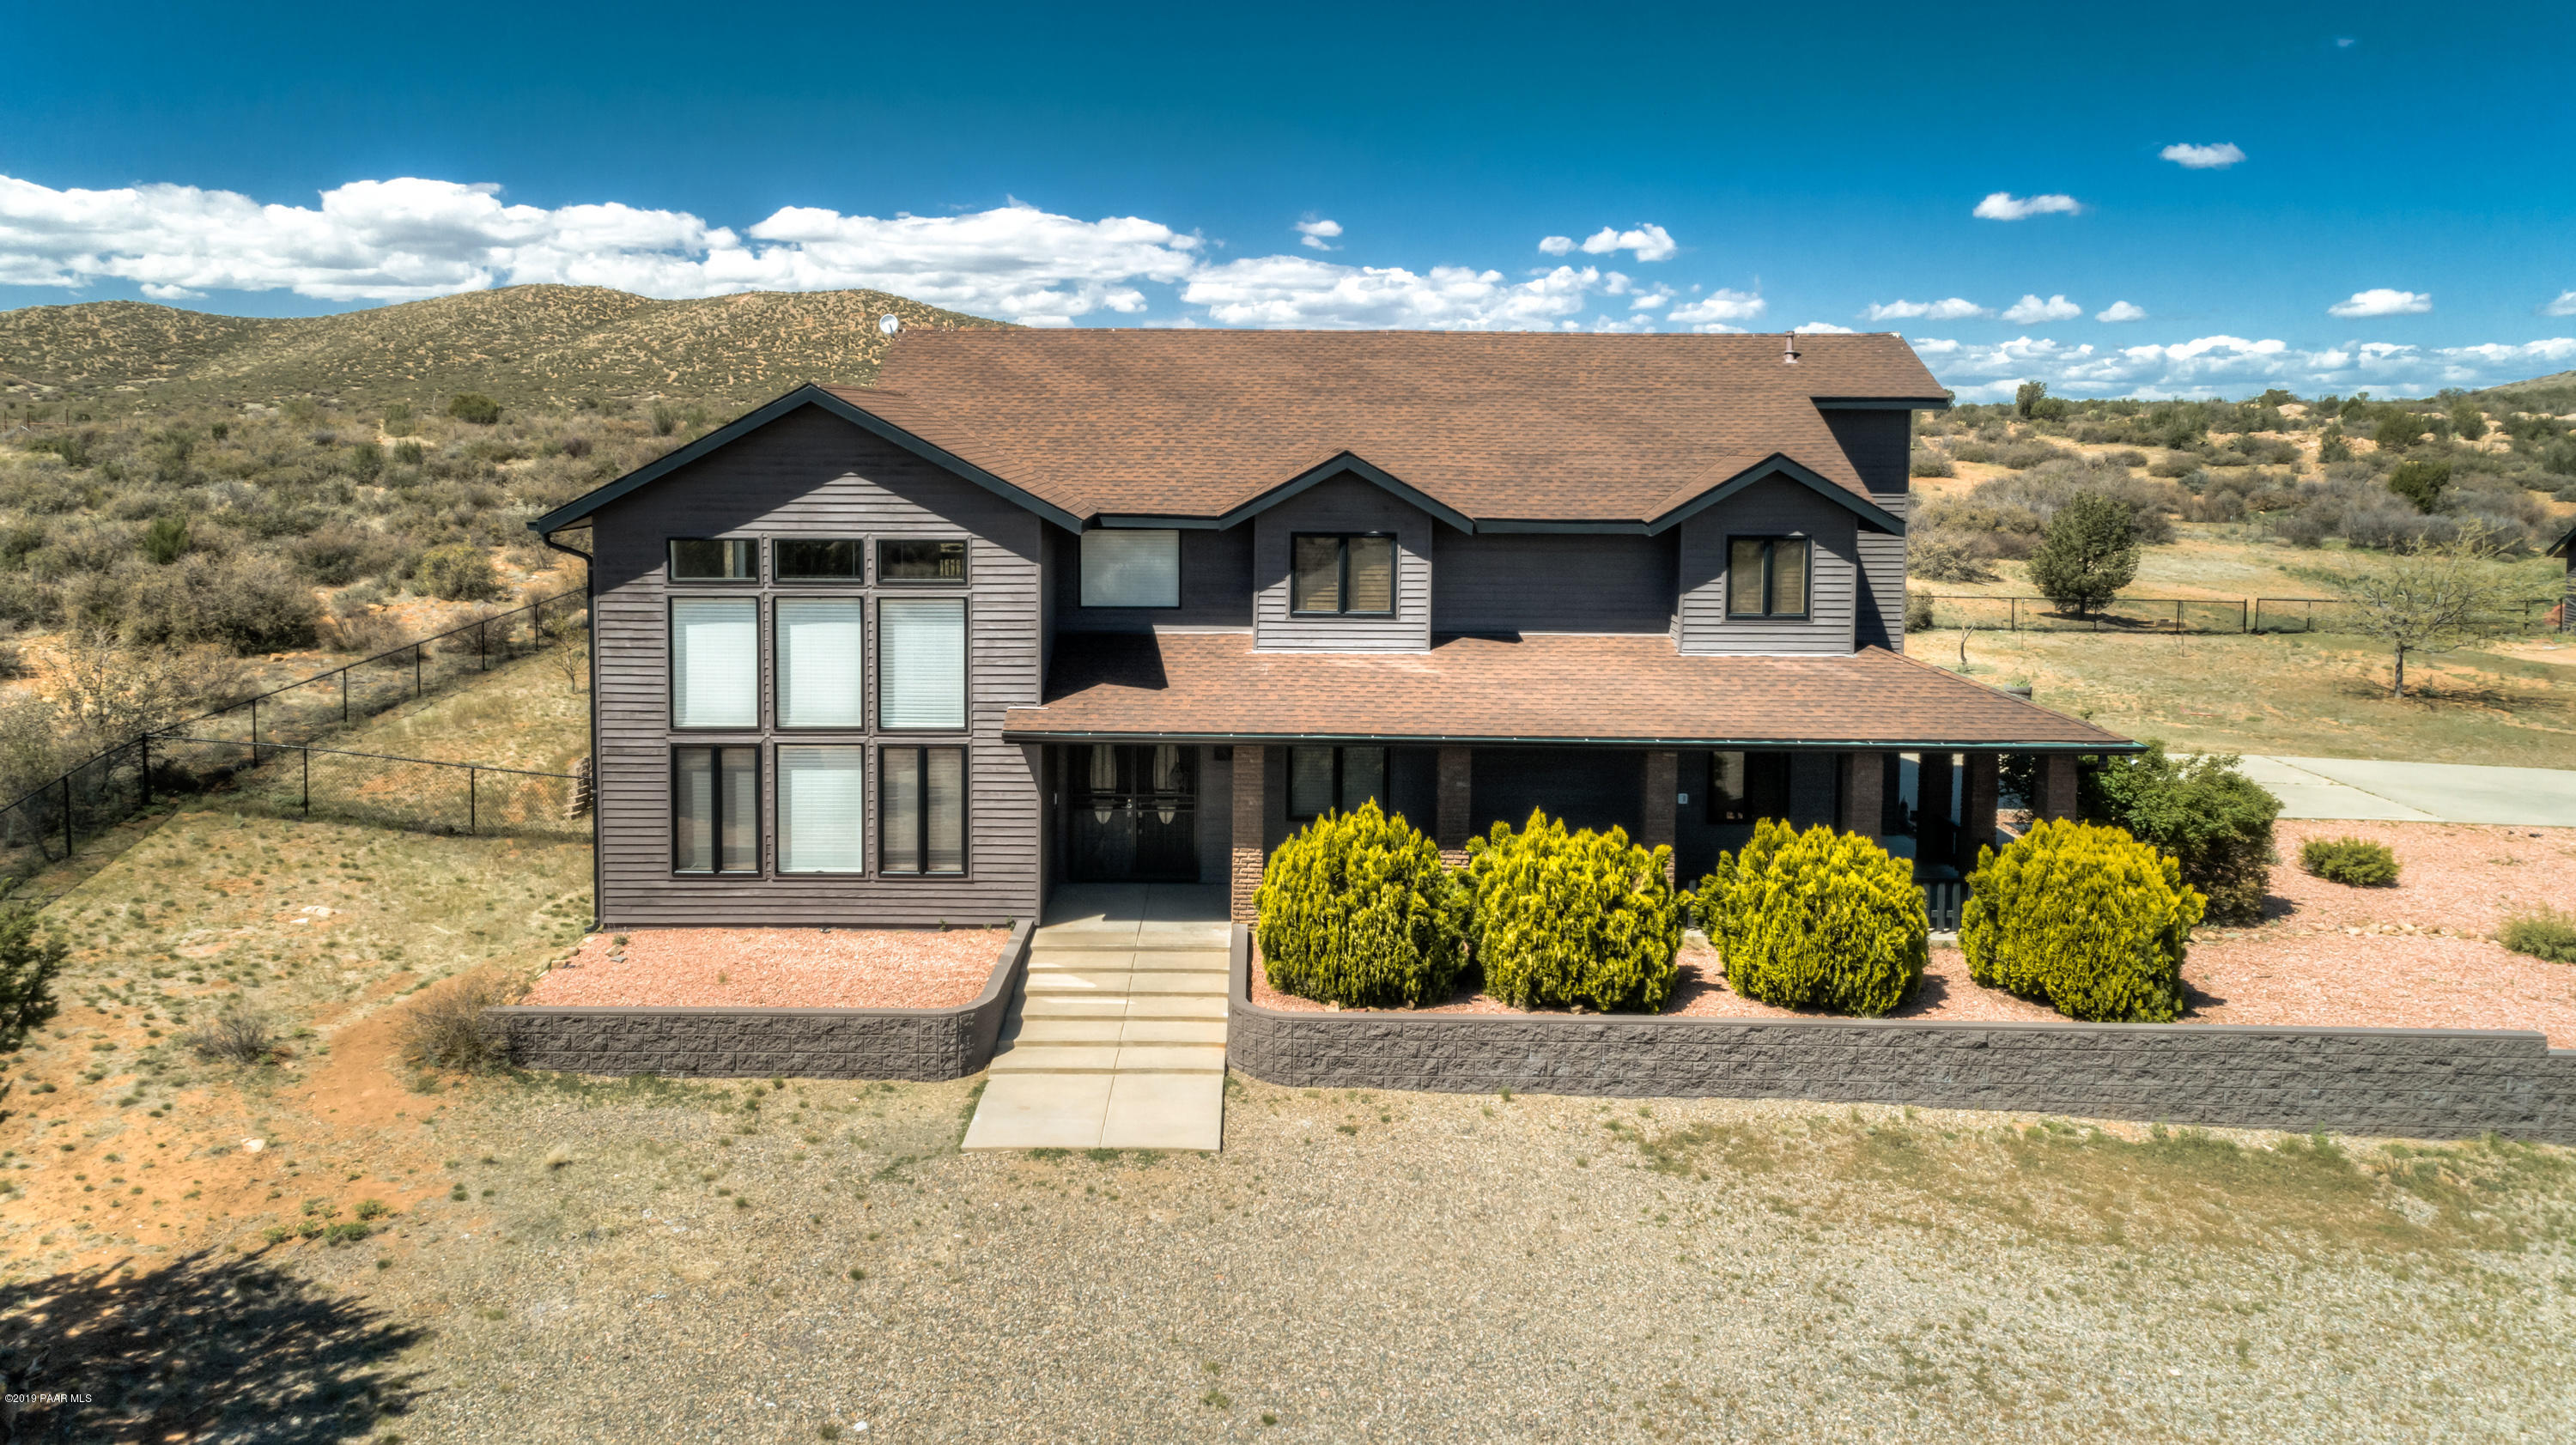 Photo of 10190 Prescott Ridge, Prescott Valley, AZ 86315